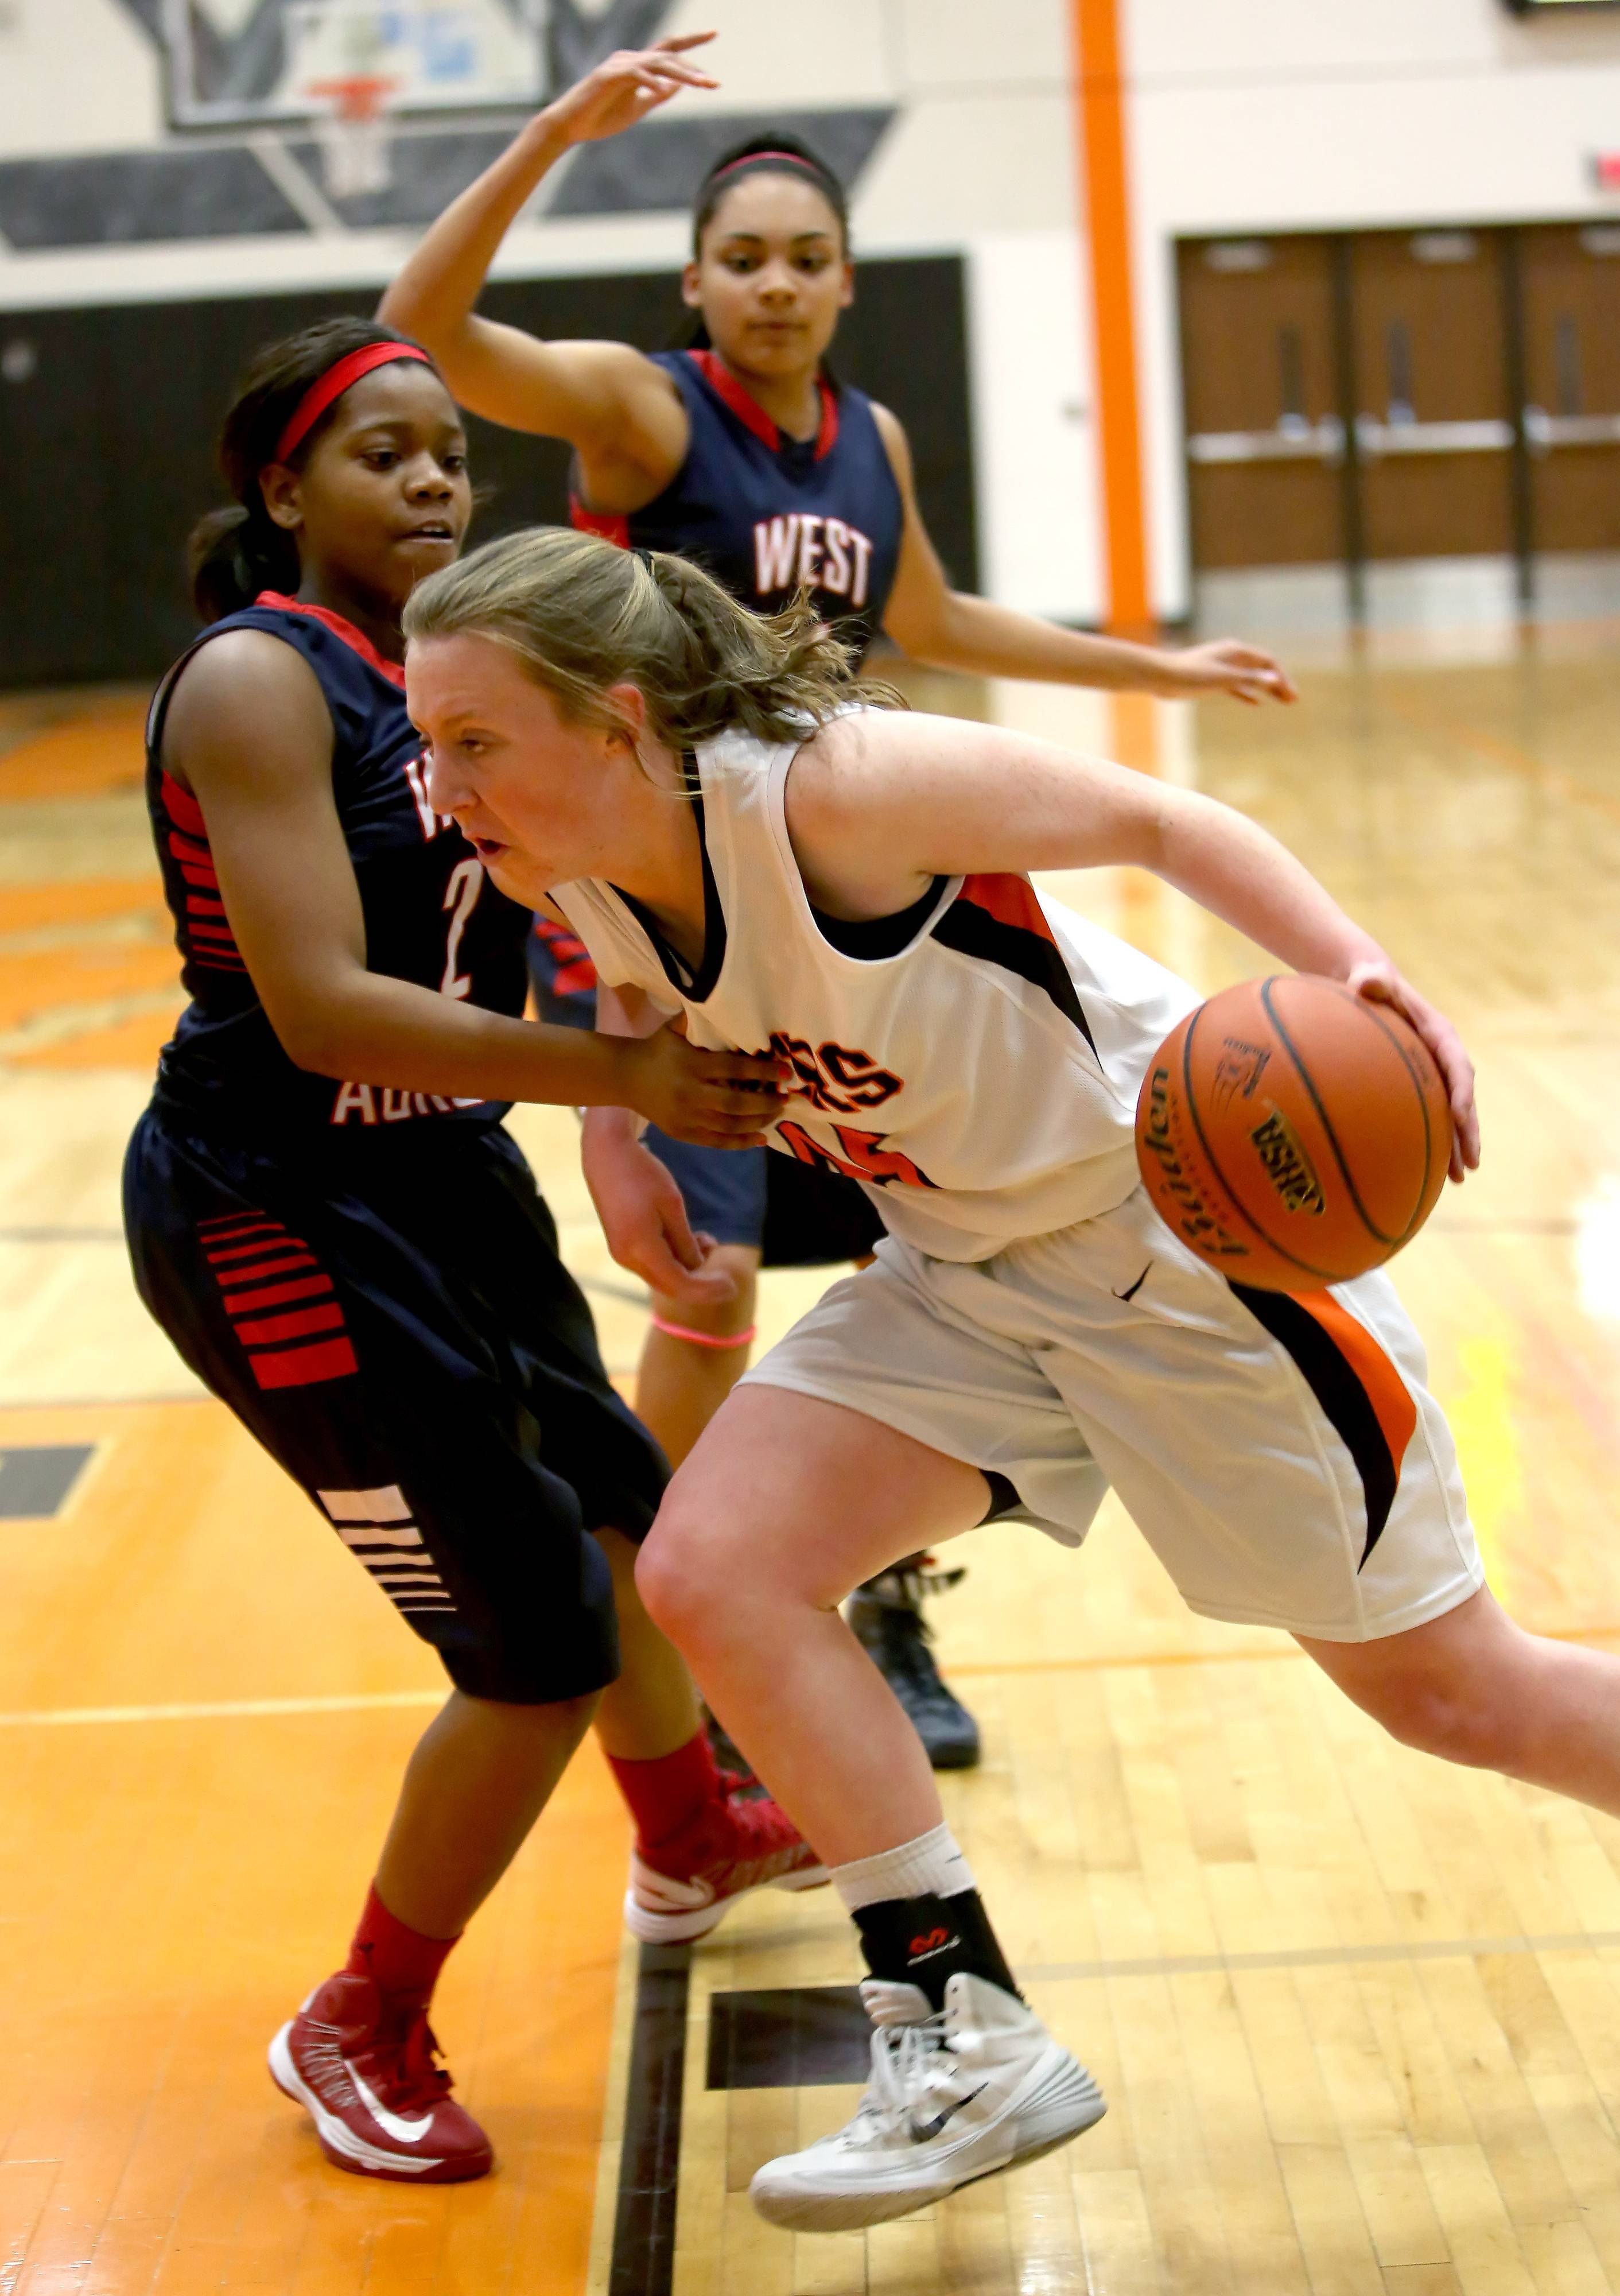 Wheaton Warrenville South's Meghan Waldron drives past Ashley Williams, left, of West Aurora in girls basketball action on Monday in Wheaton.